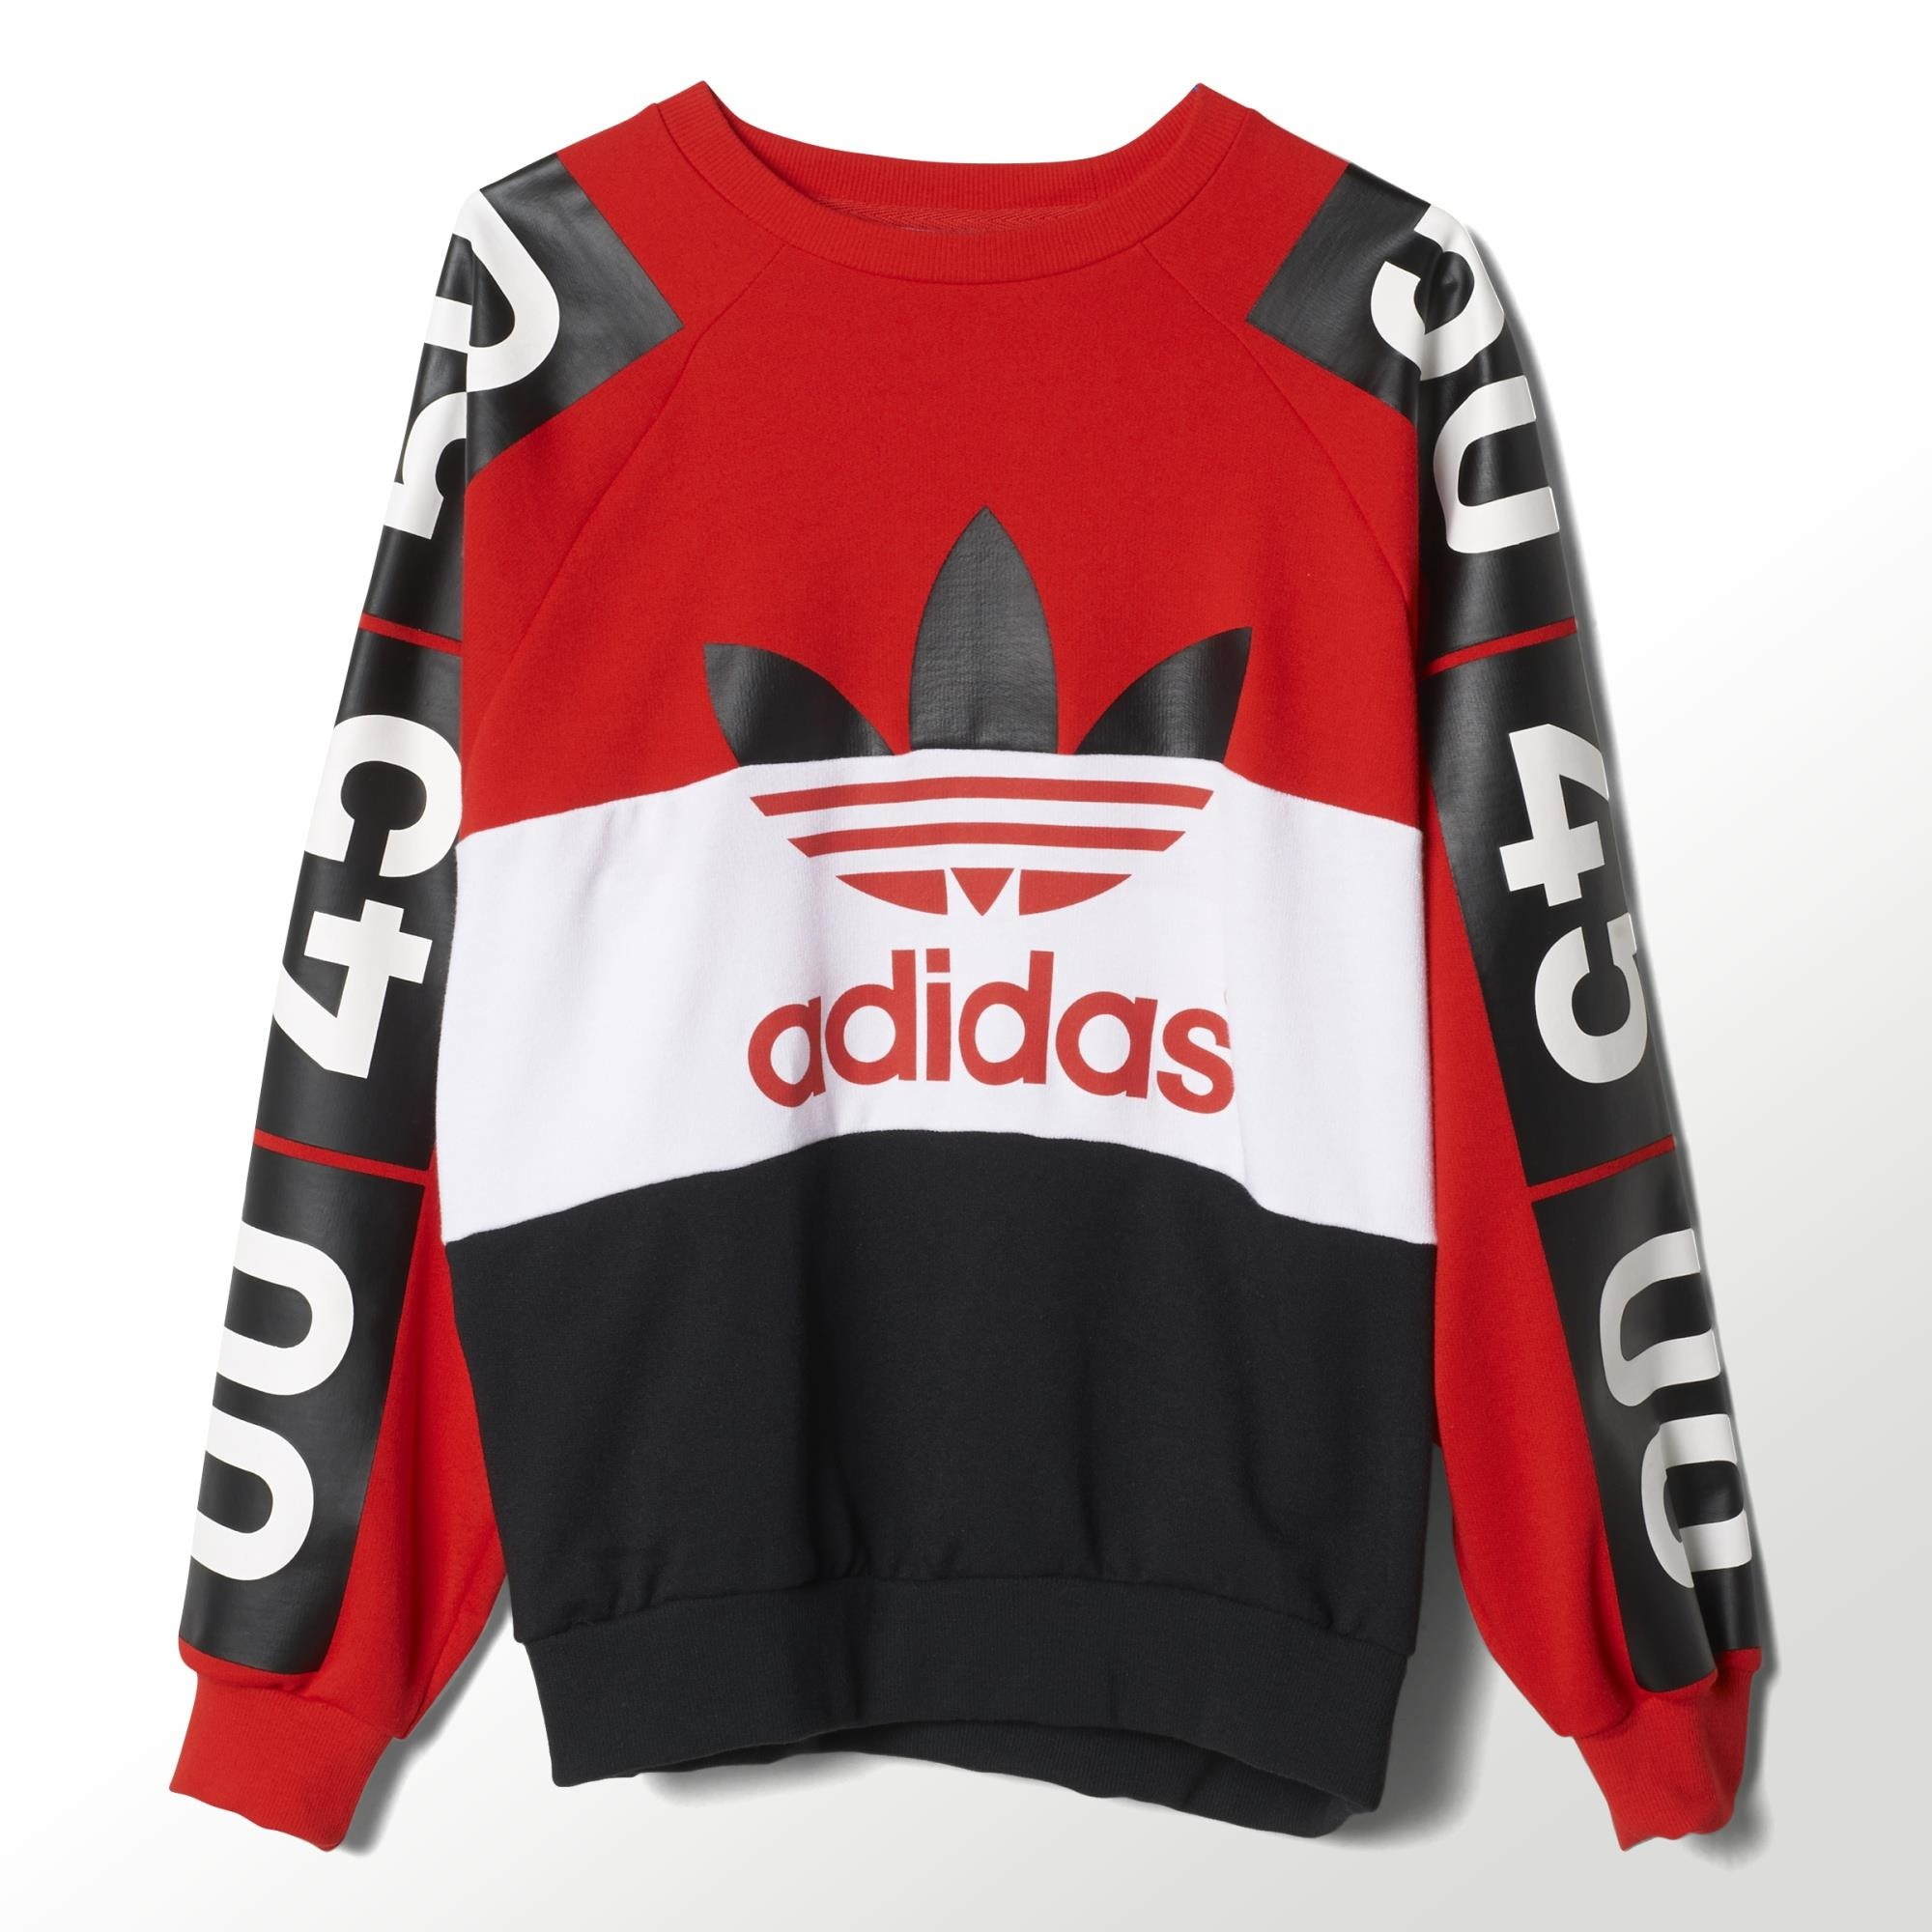 adidas topshop superstar sweatshirt red adidas uk. Black Bedroom Furniture Sets. Home Design Ideas